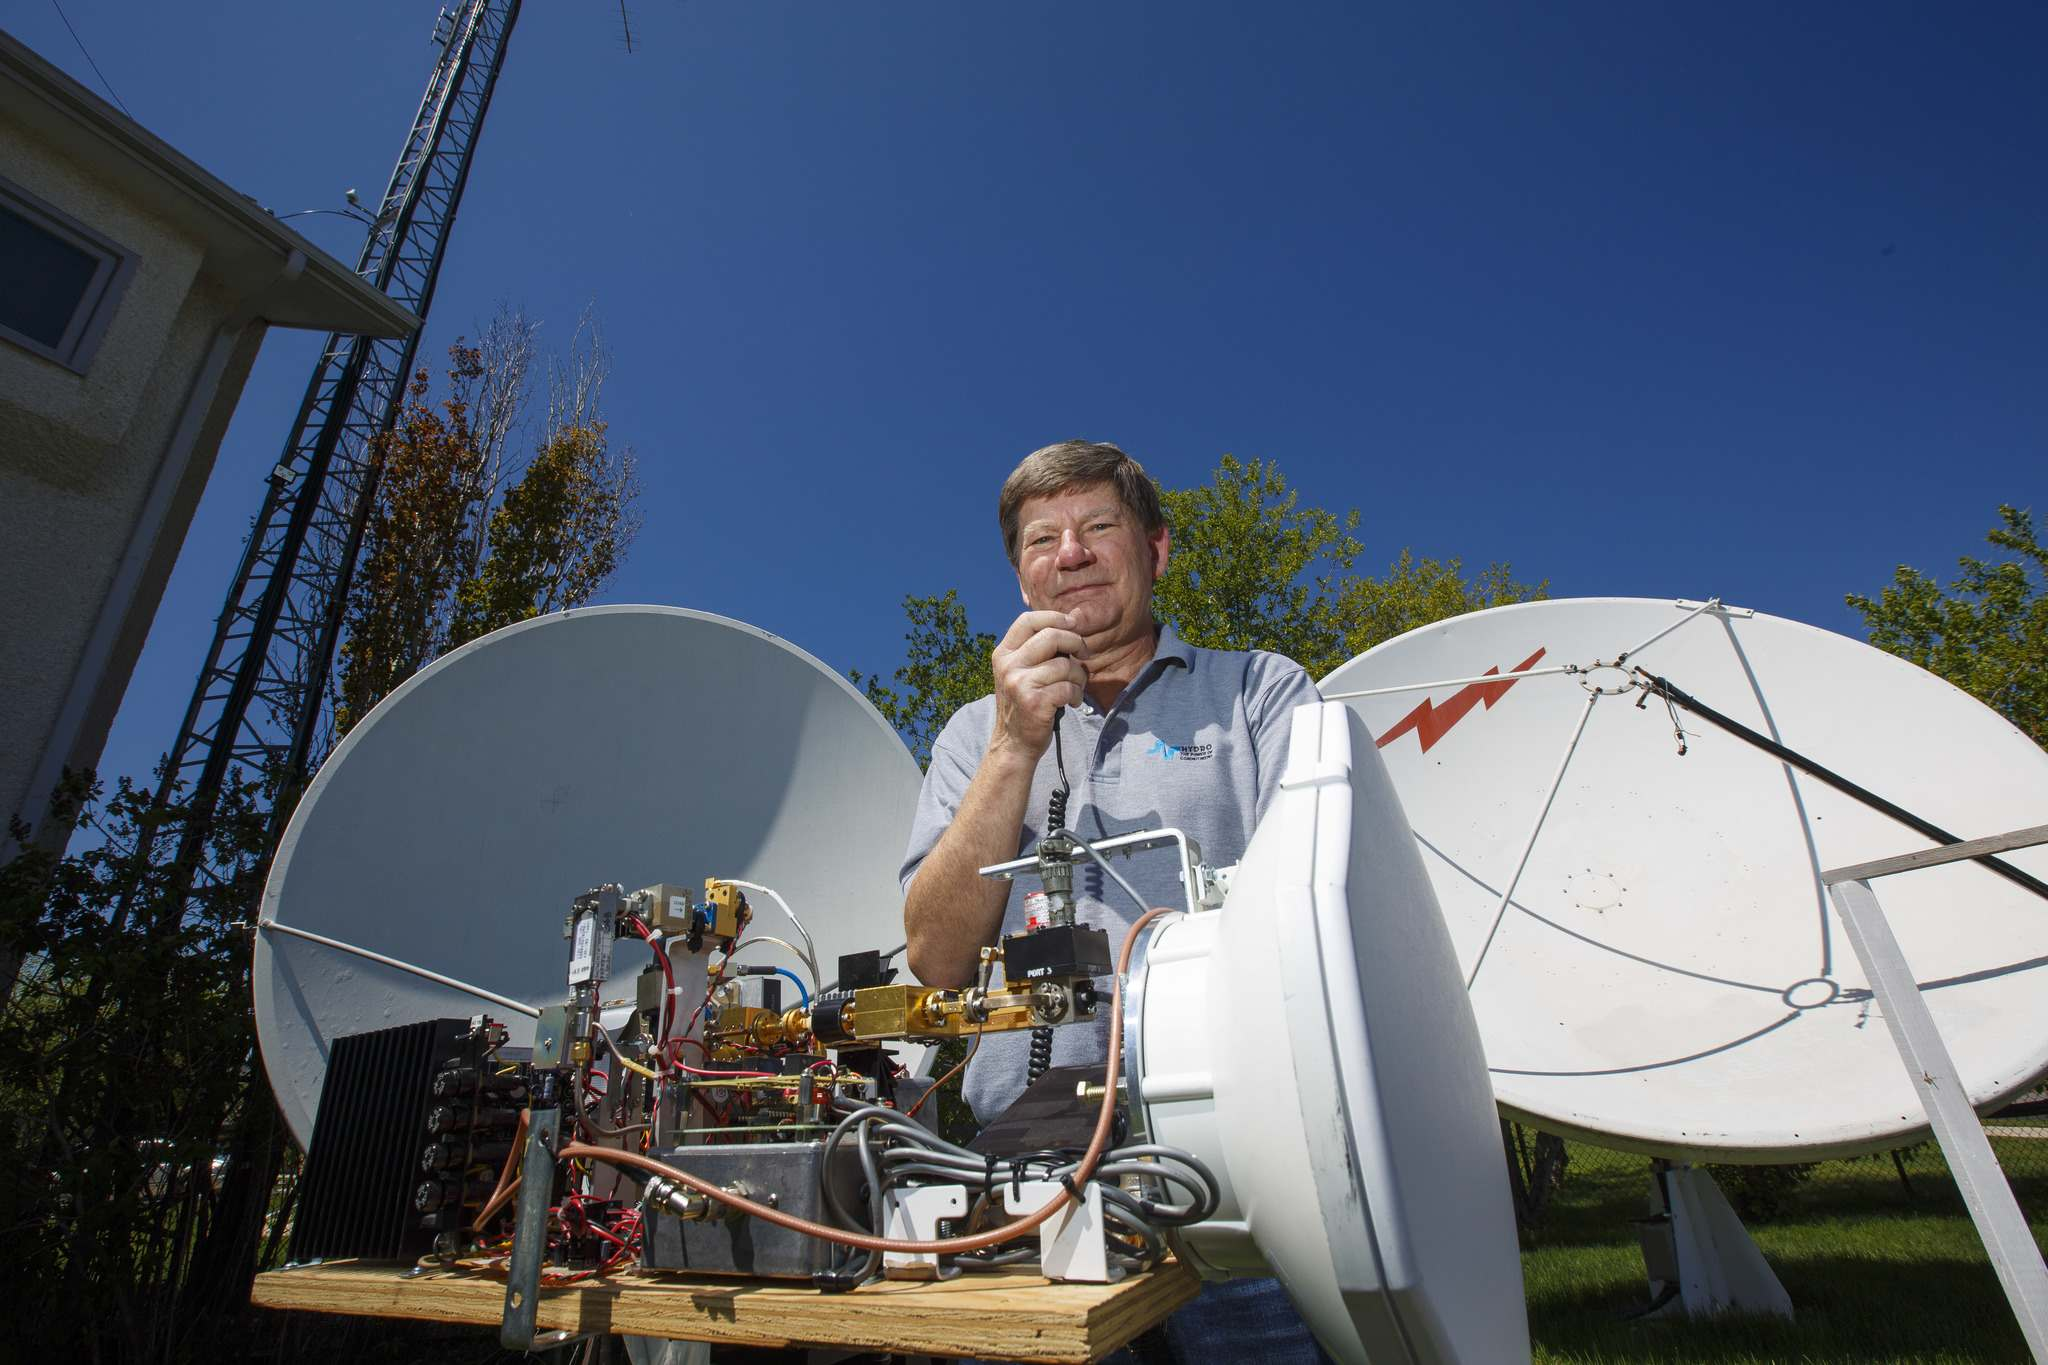 Barry Malowanchuk built his first radio transmitter in the 1960s when he was 12. His gear has grown significantly more sophisticated since then. (Mike Deal / Winnipeg Free Press)